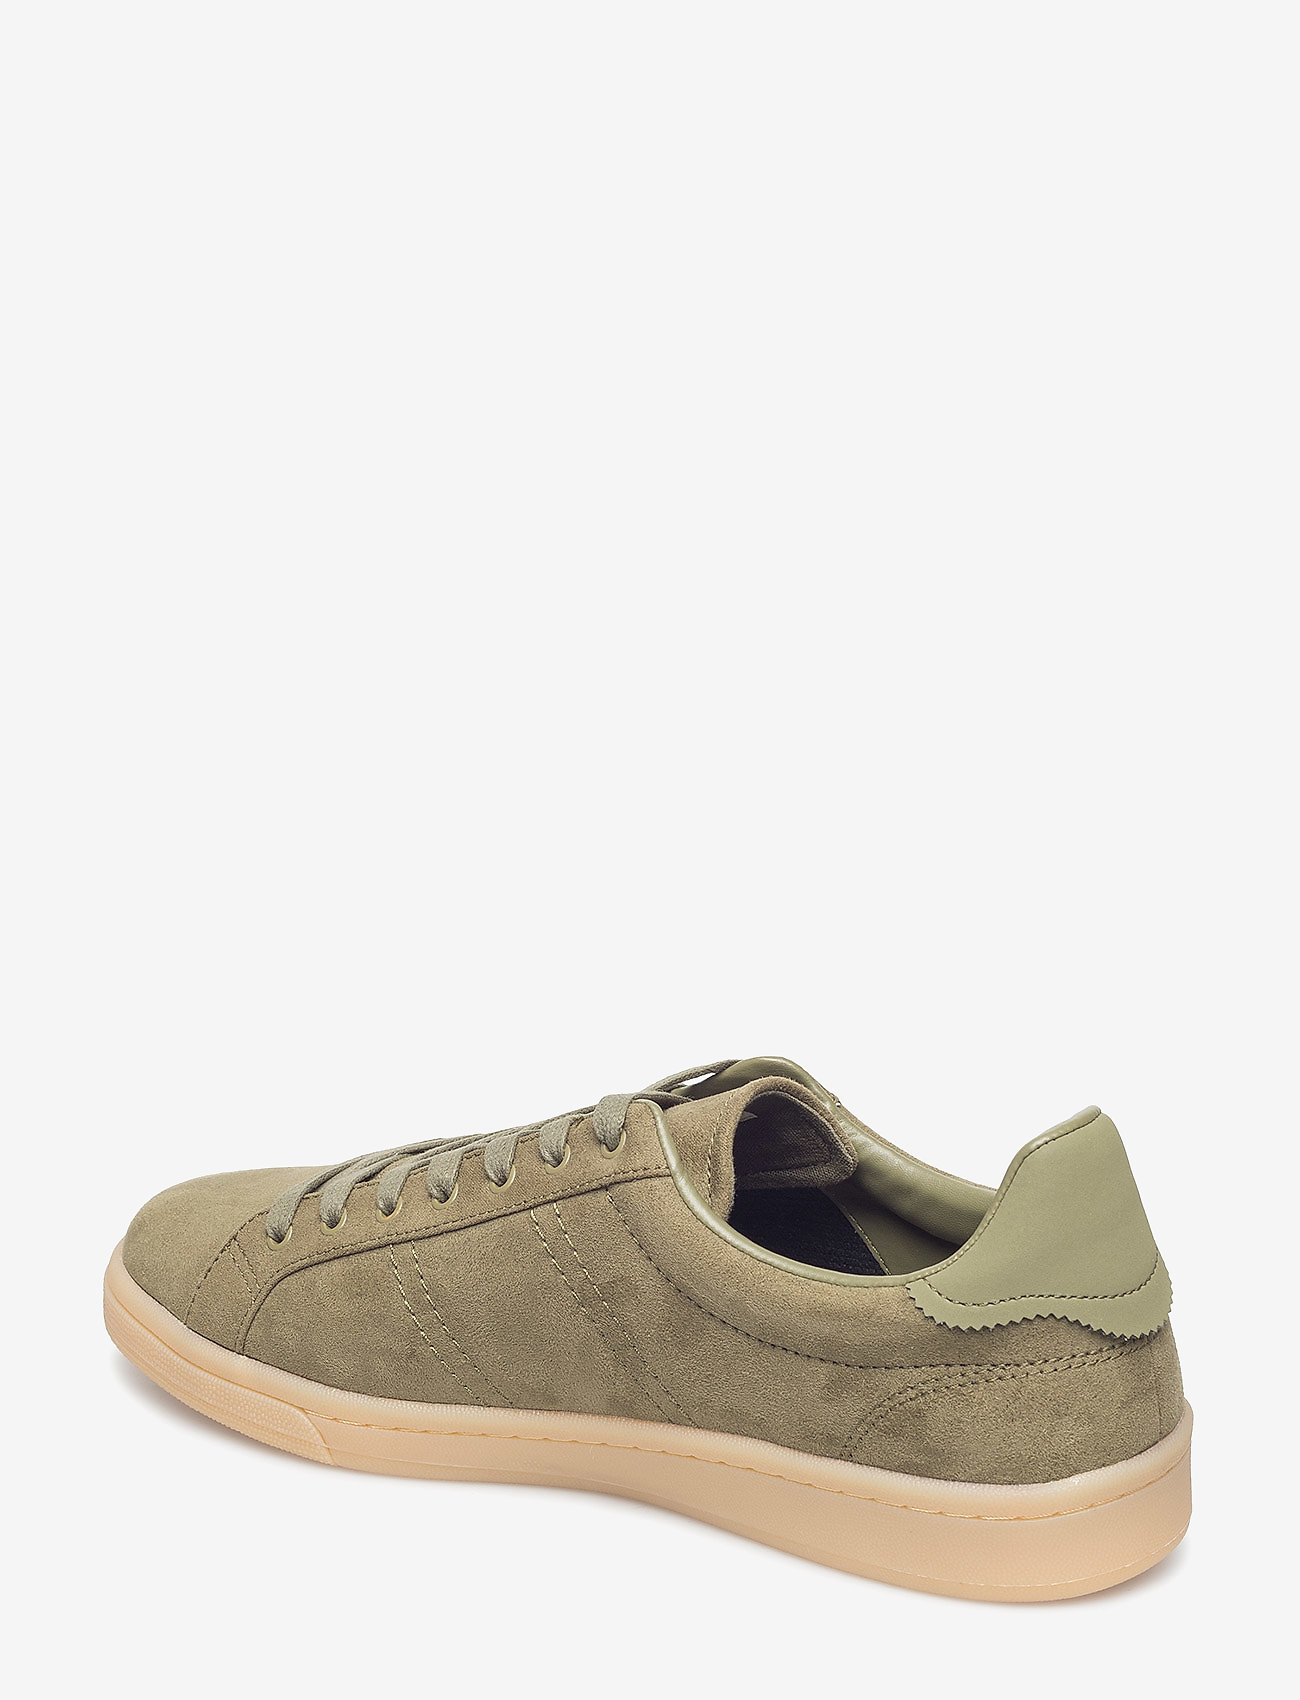 B721 Microfibre (Burnt Olive) - Fred Perry